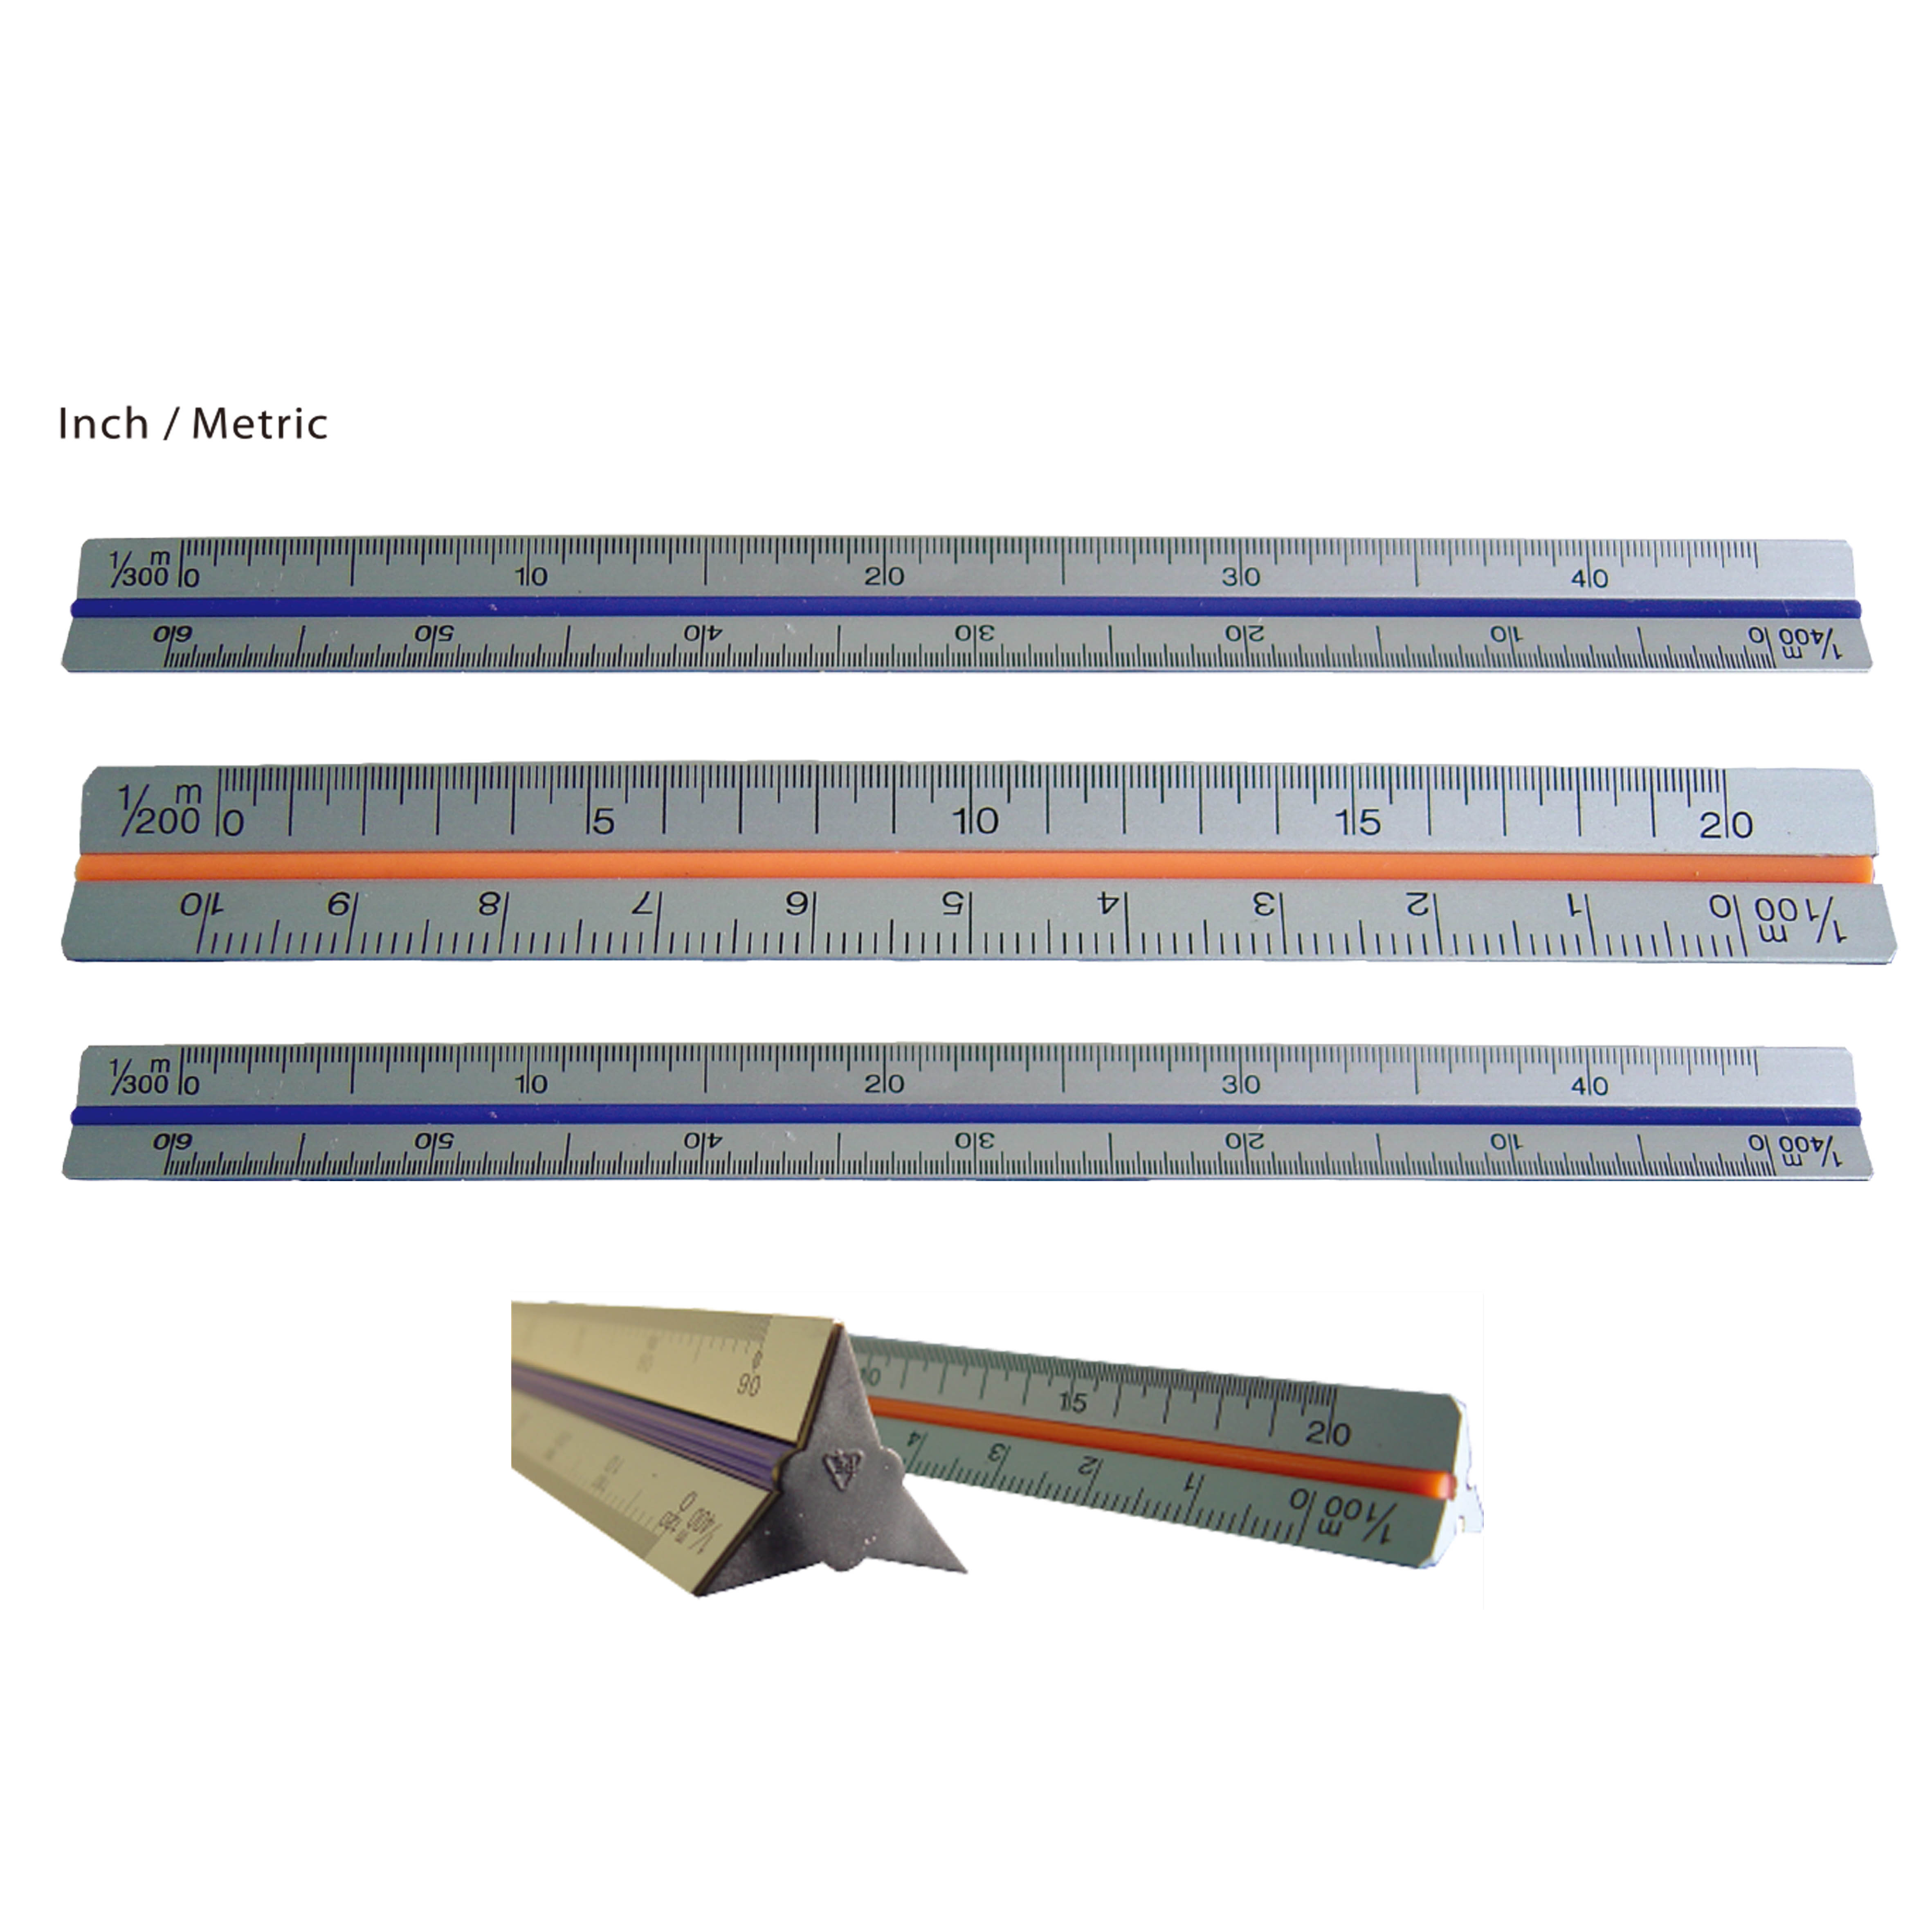 RATIO-SCALE RULERS